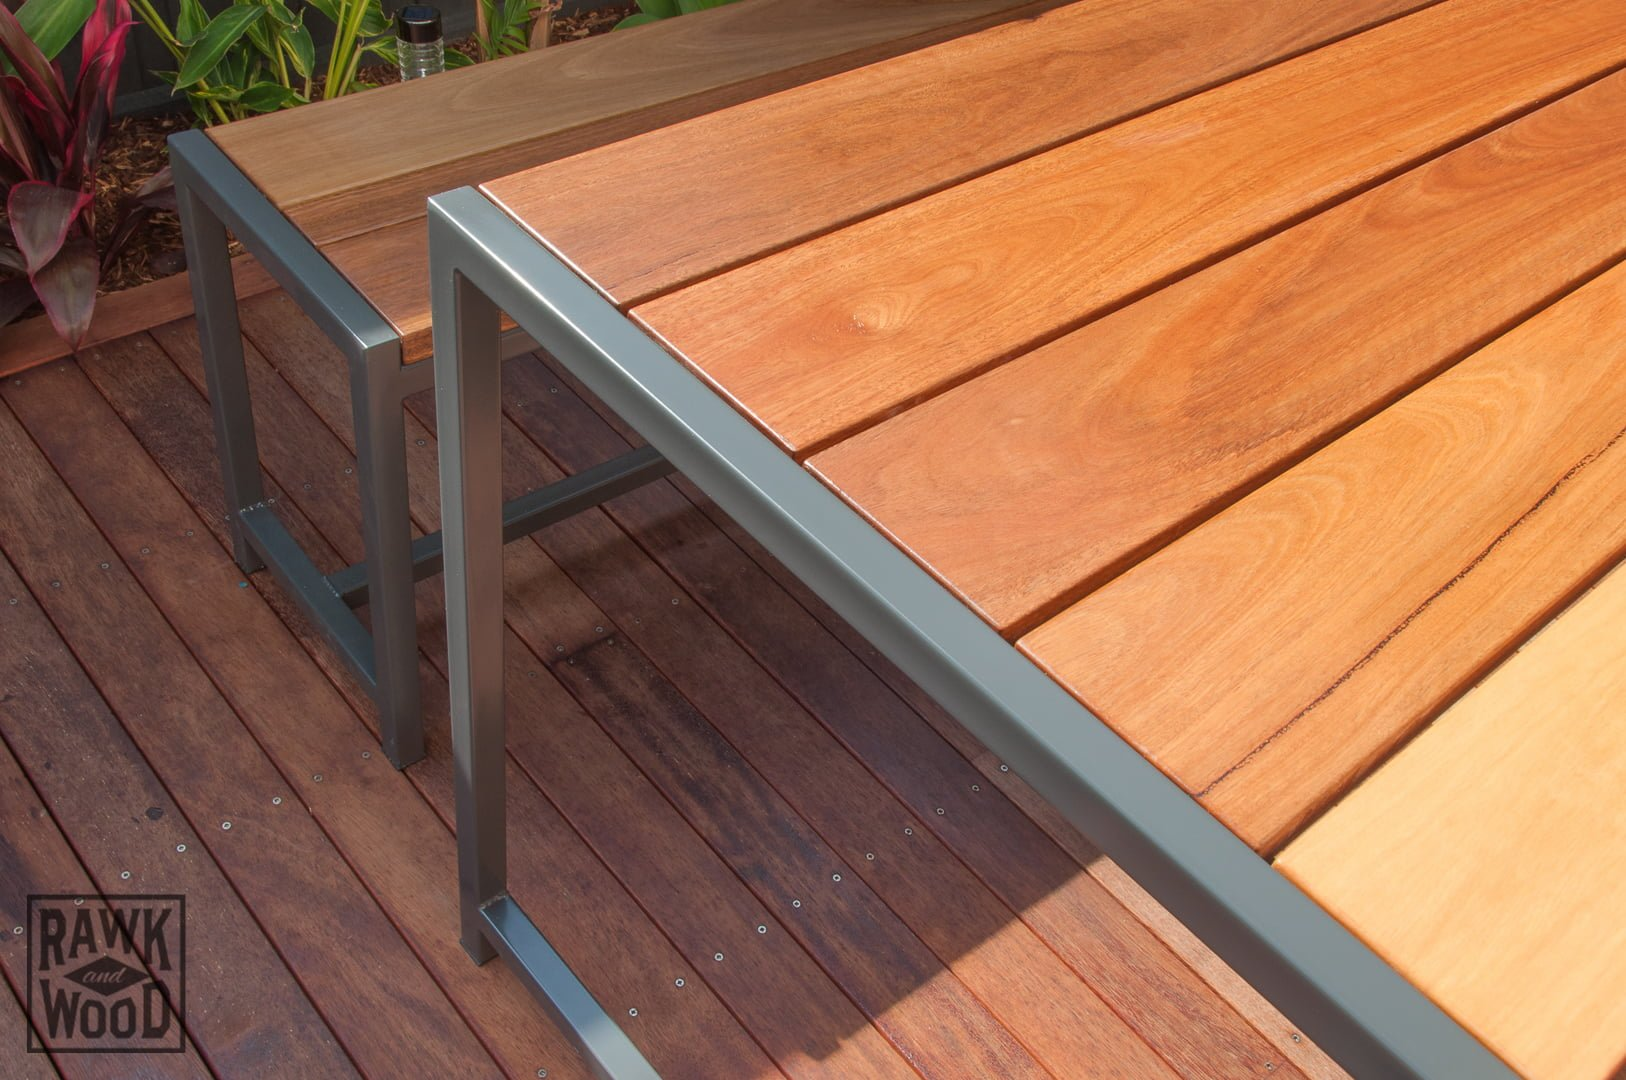 spotted-gum-outdoor-setting, custom-made in Melbourne by Rawk and Wood